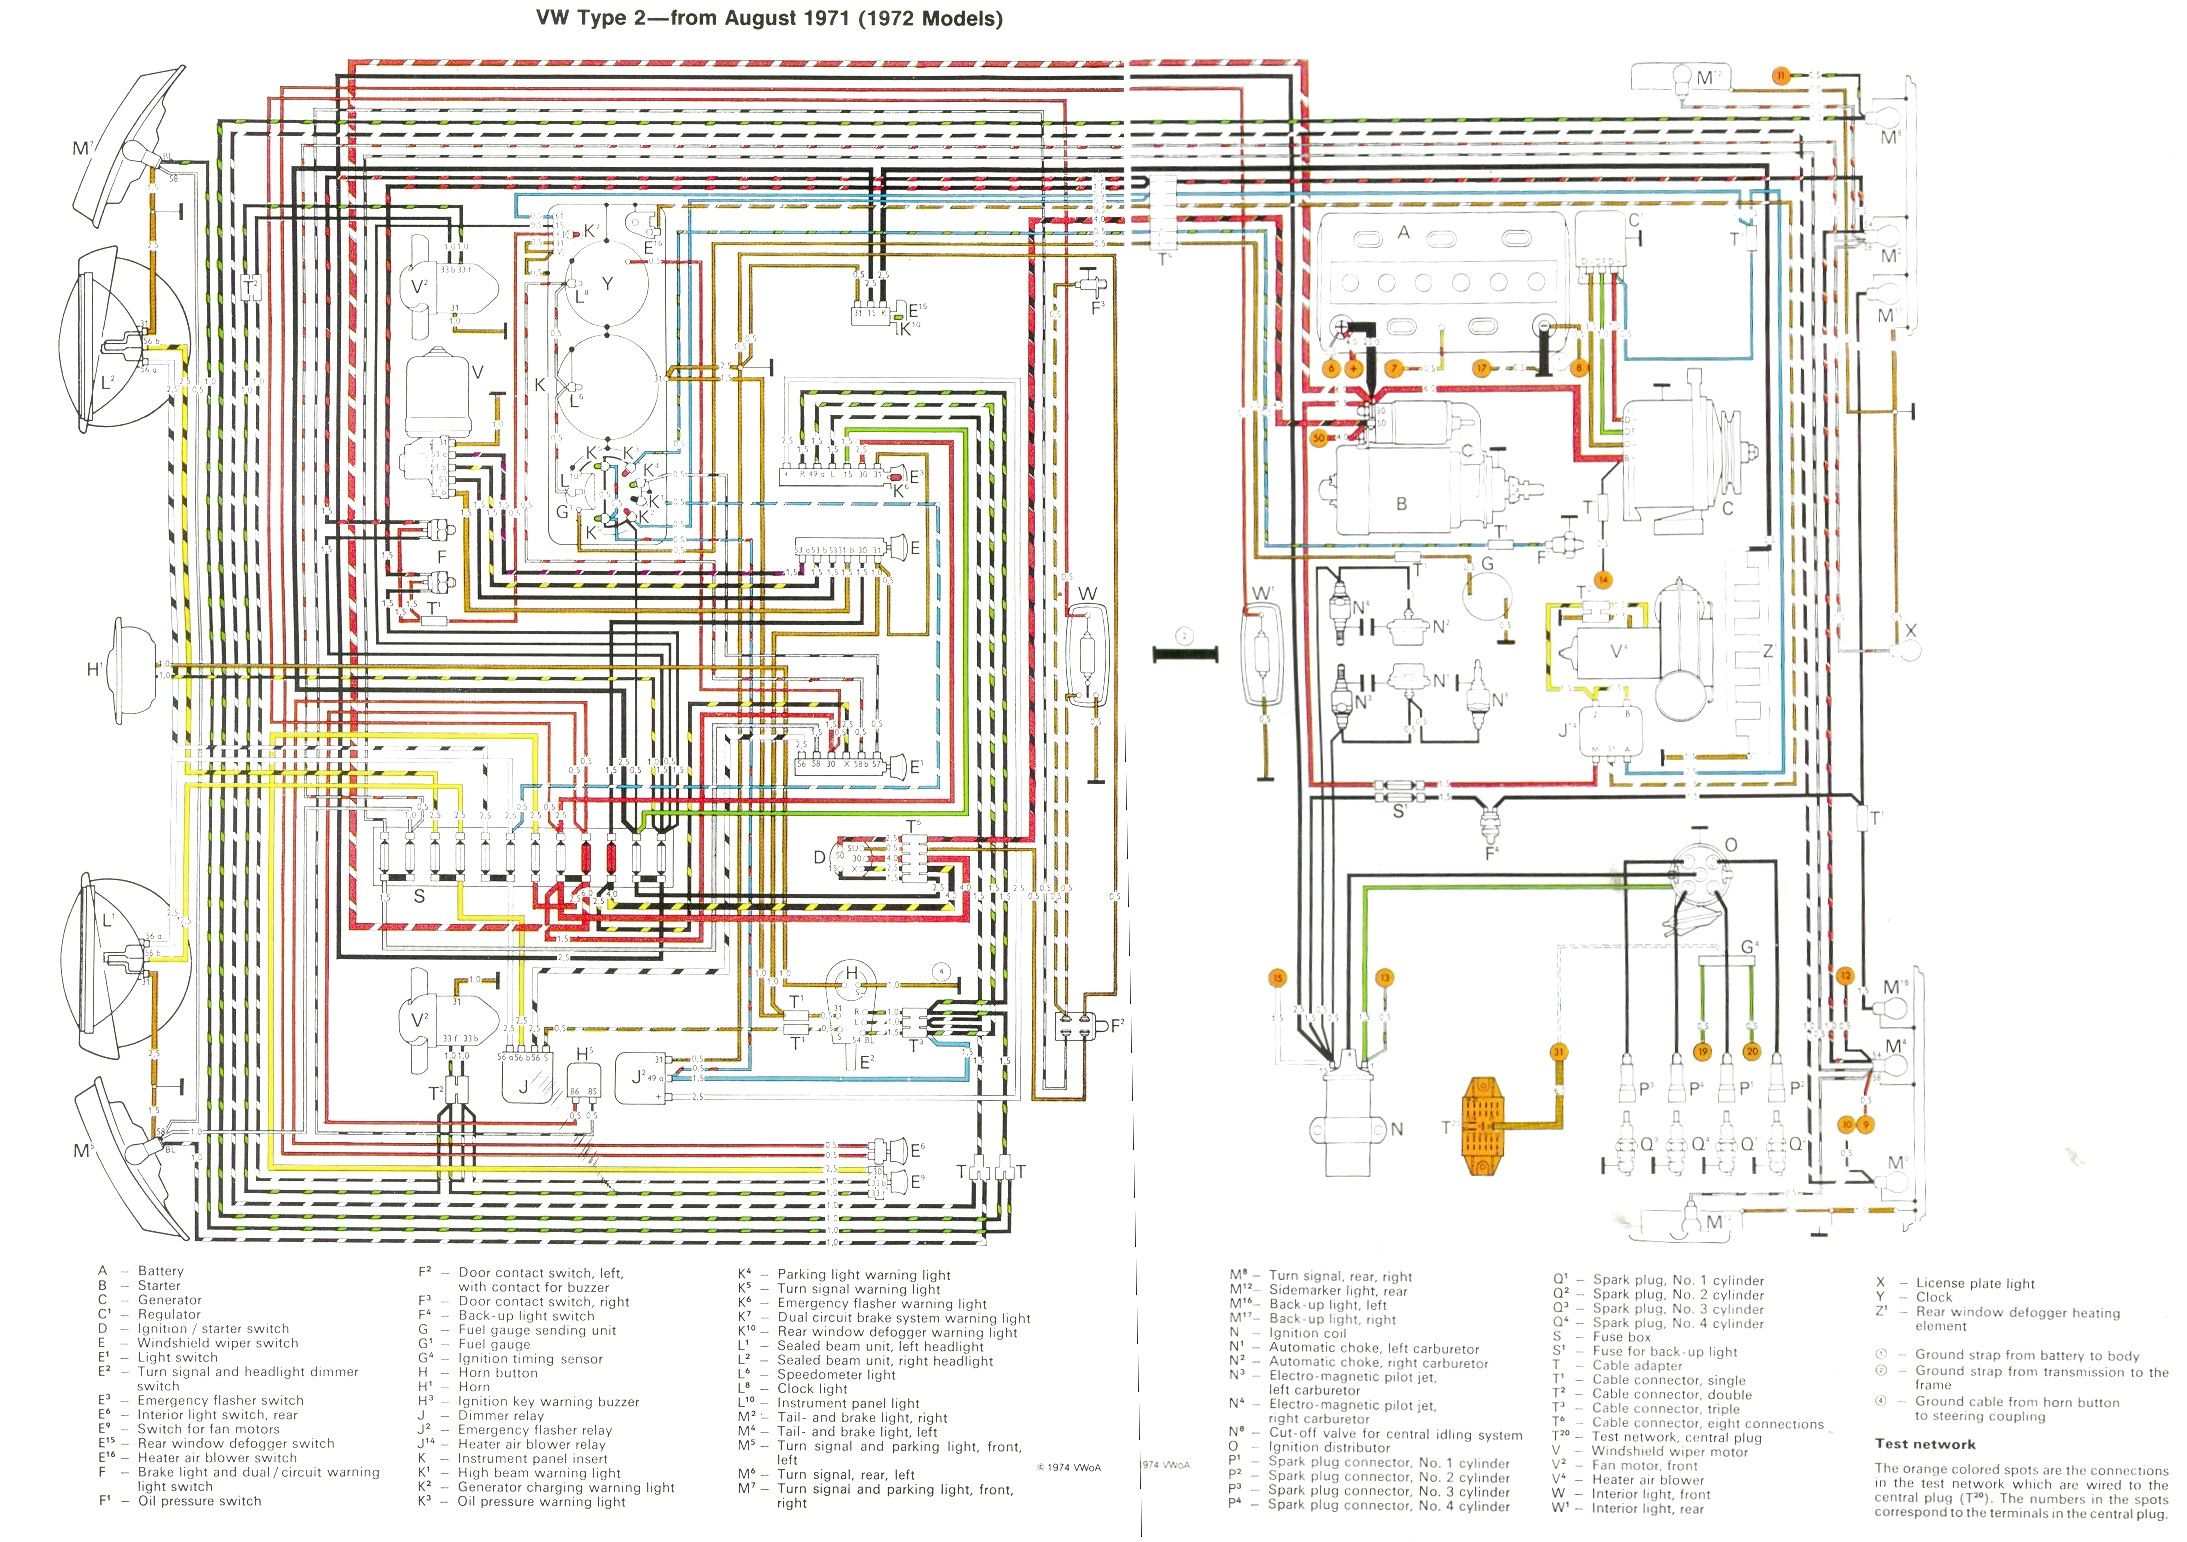 bus 71 72 vw bus wiring diagram 1965 vw bus wiring diagram \u2022 wiring diagrams vw t5 wiring diagram download at panicattacktreatment.co